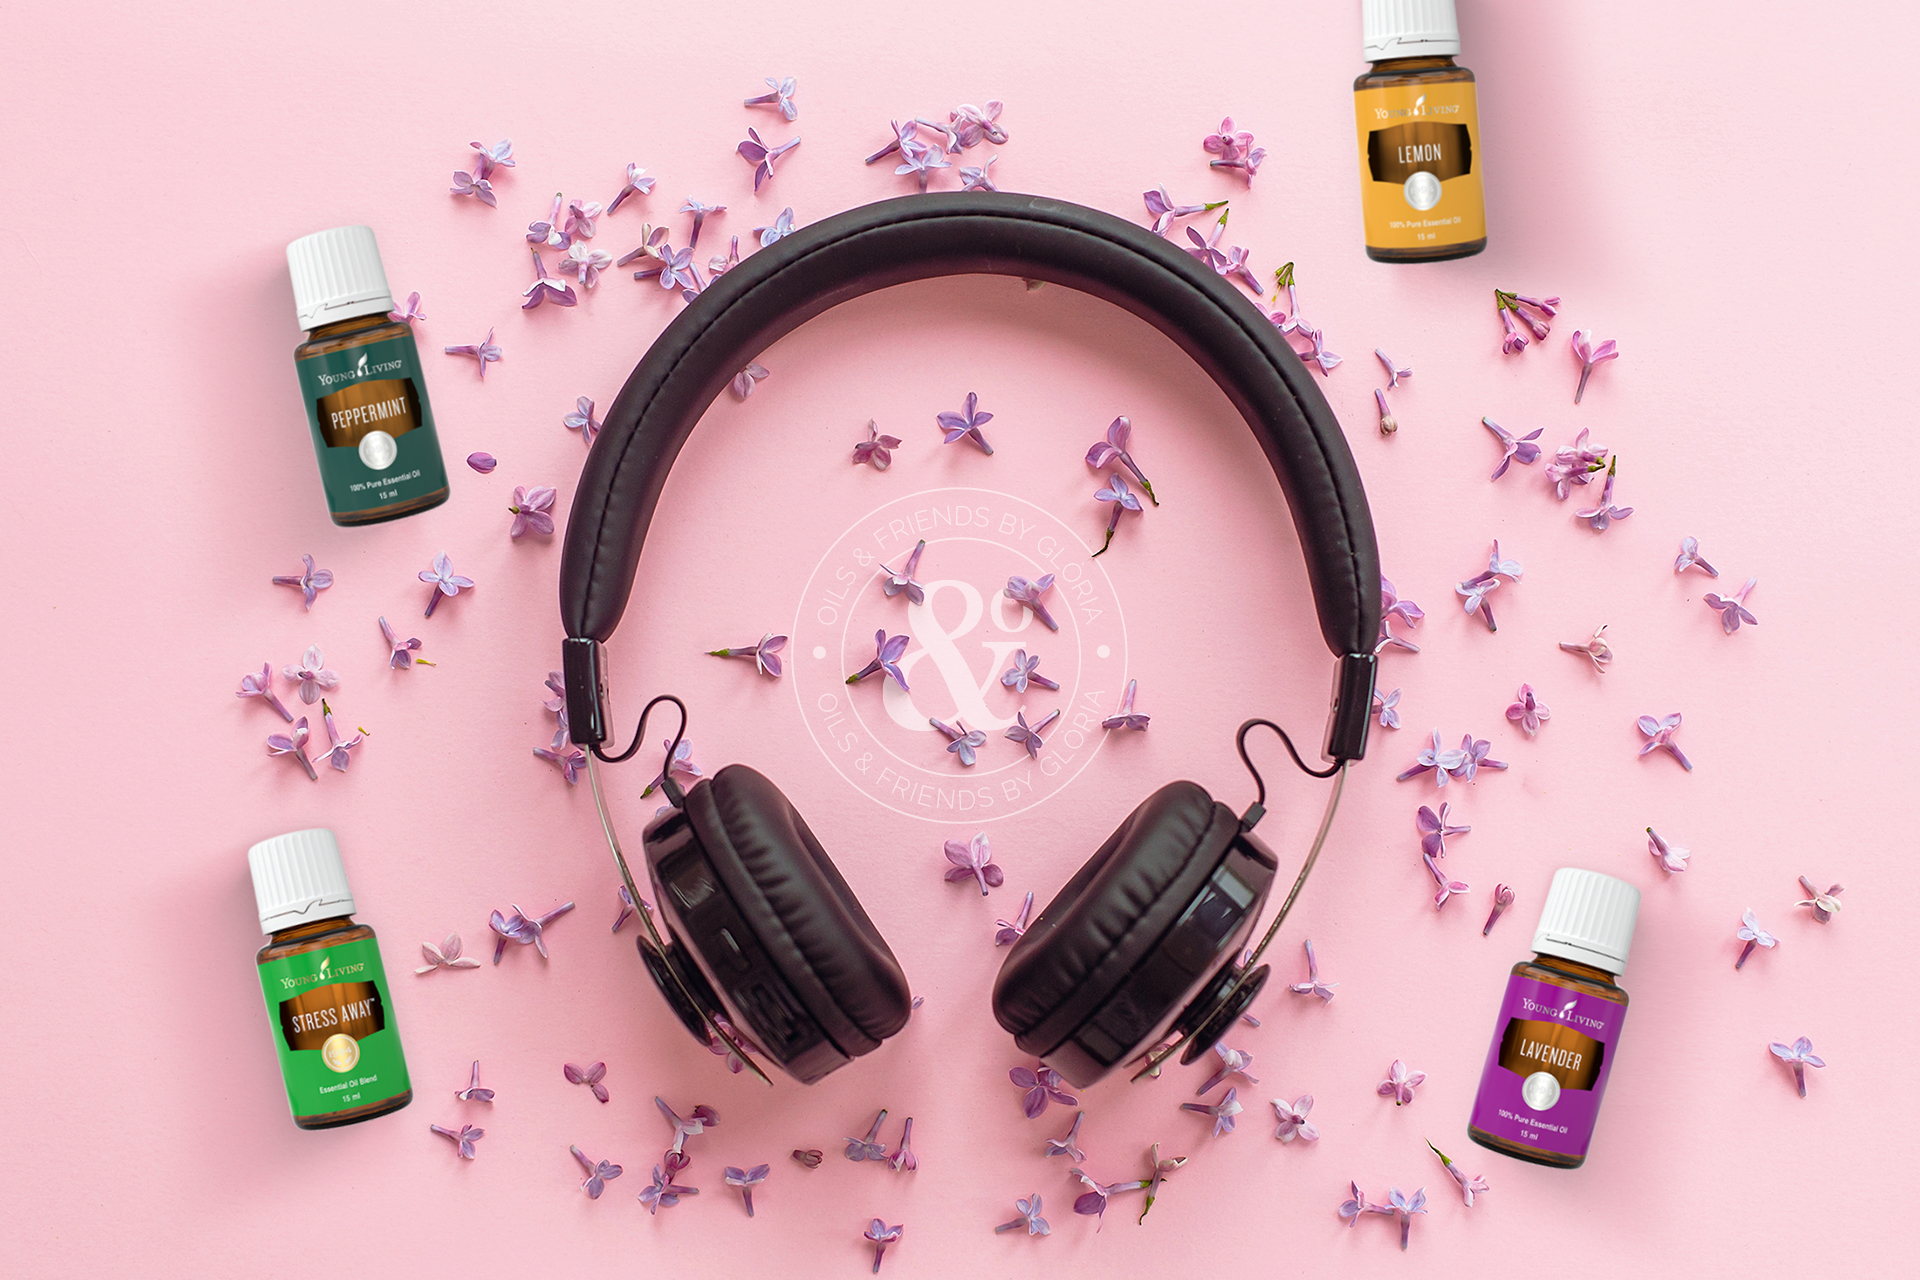 stylish black headphones on pink background with lilac flowers.